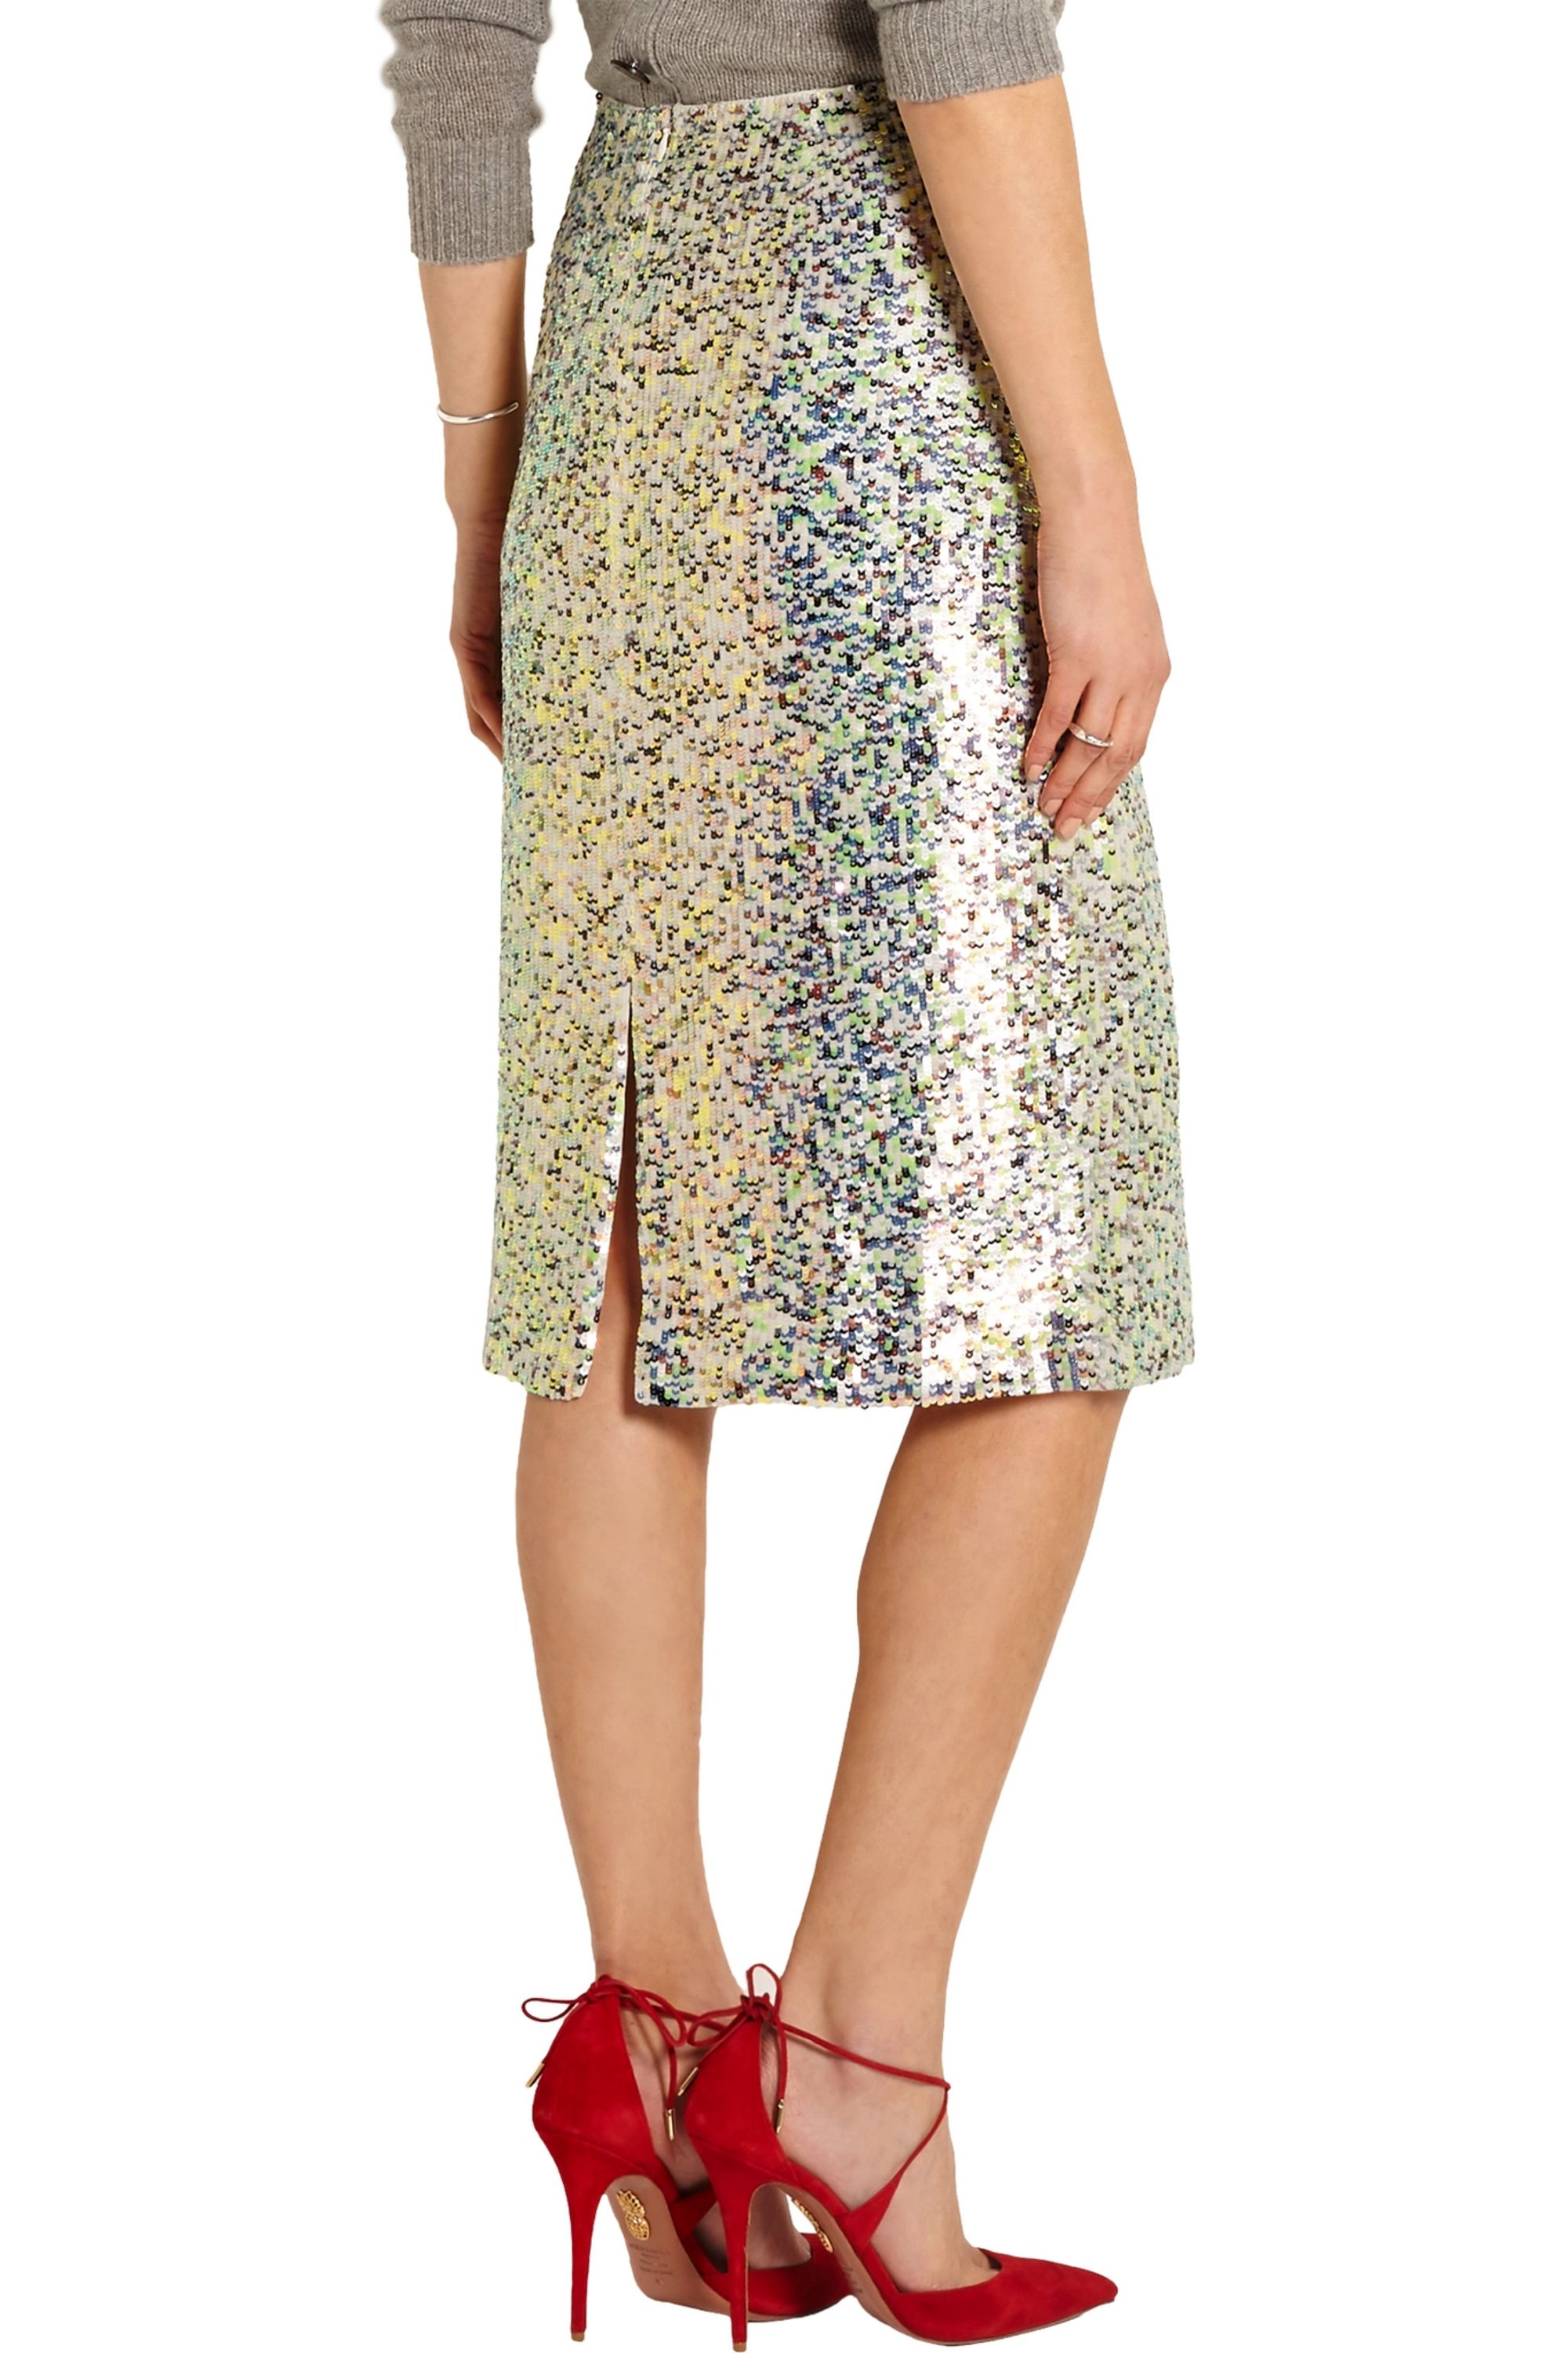 J.Crew Collection sequined georgette skirt